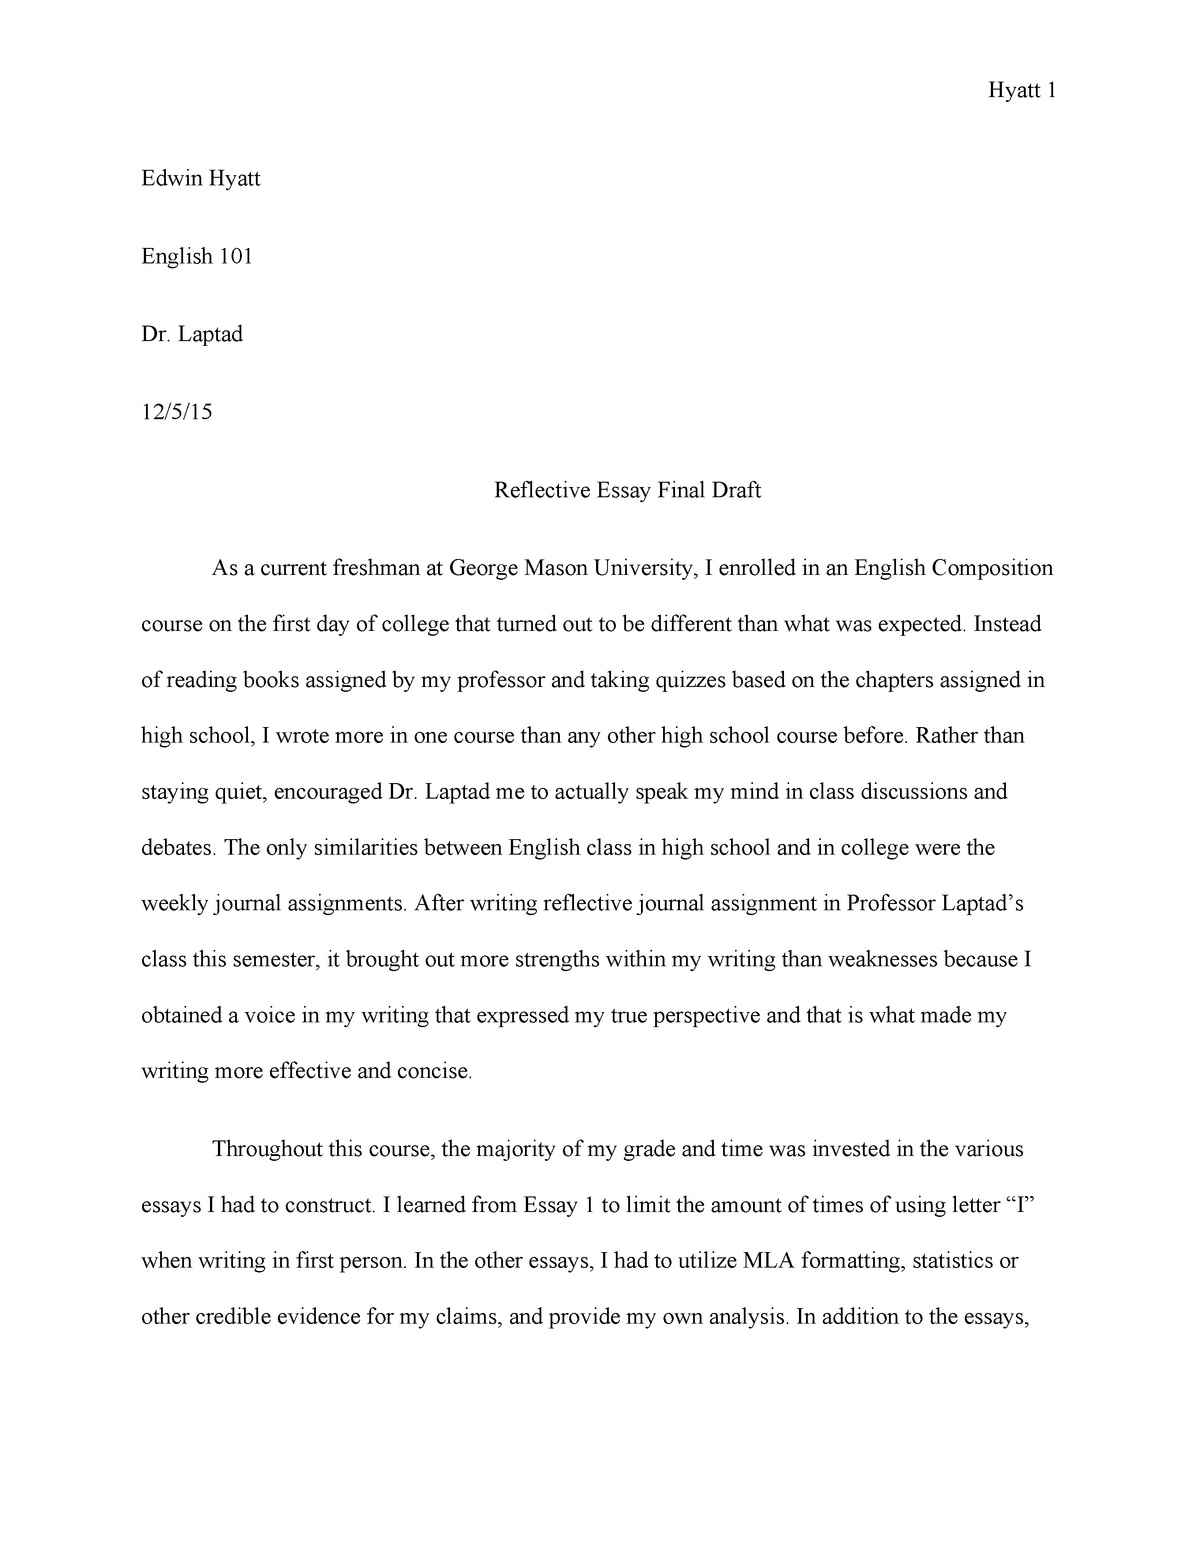 Essay On Mathematicians  Example Discussion Essay also Example Analysis Essay Reflective Essay  Edwin Hyatt Iii  Engh  Composition  Essays On Childhood Memories